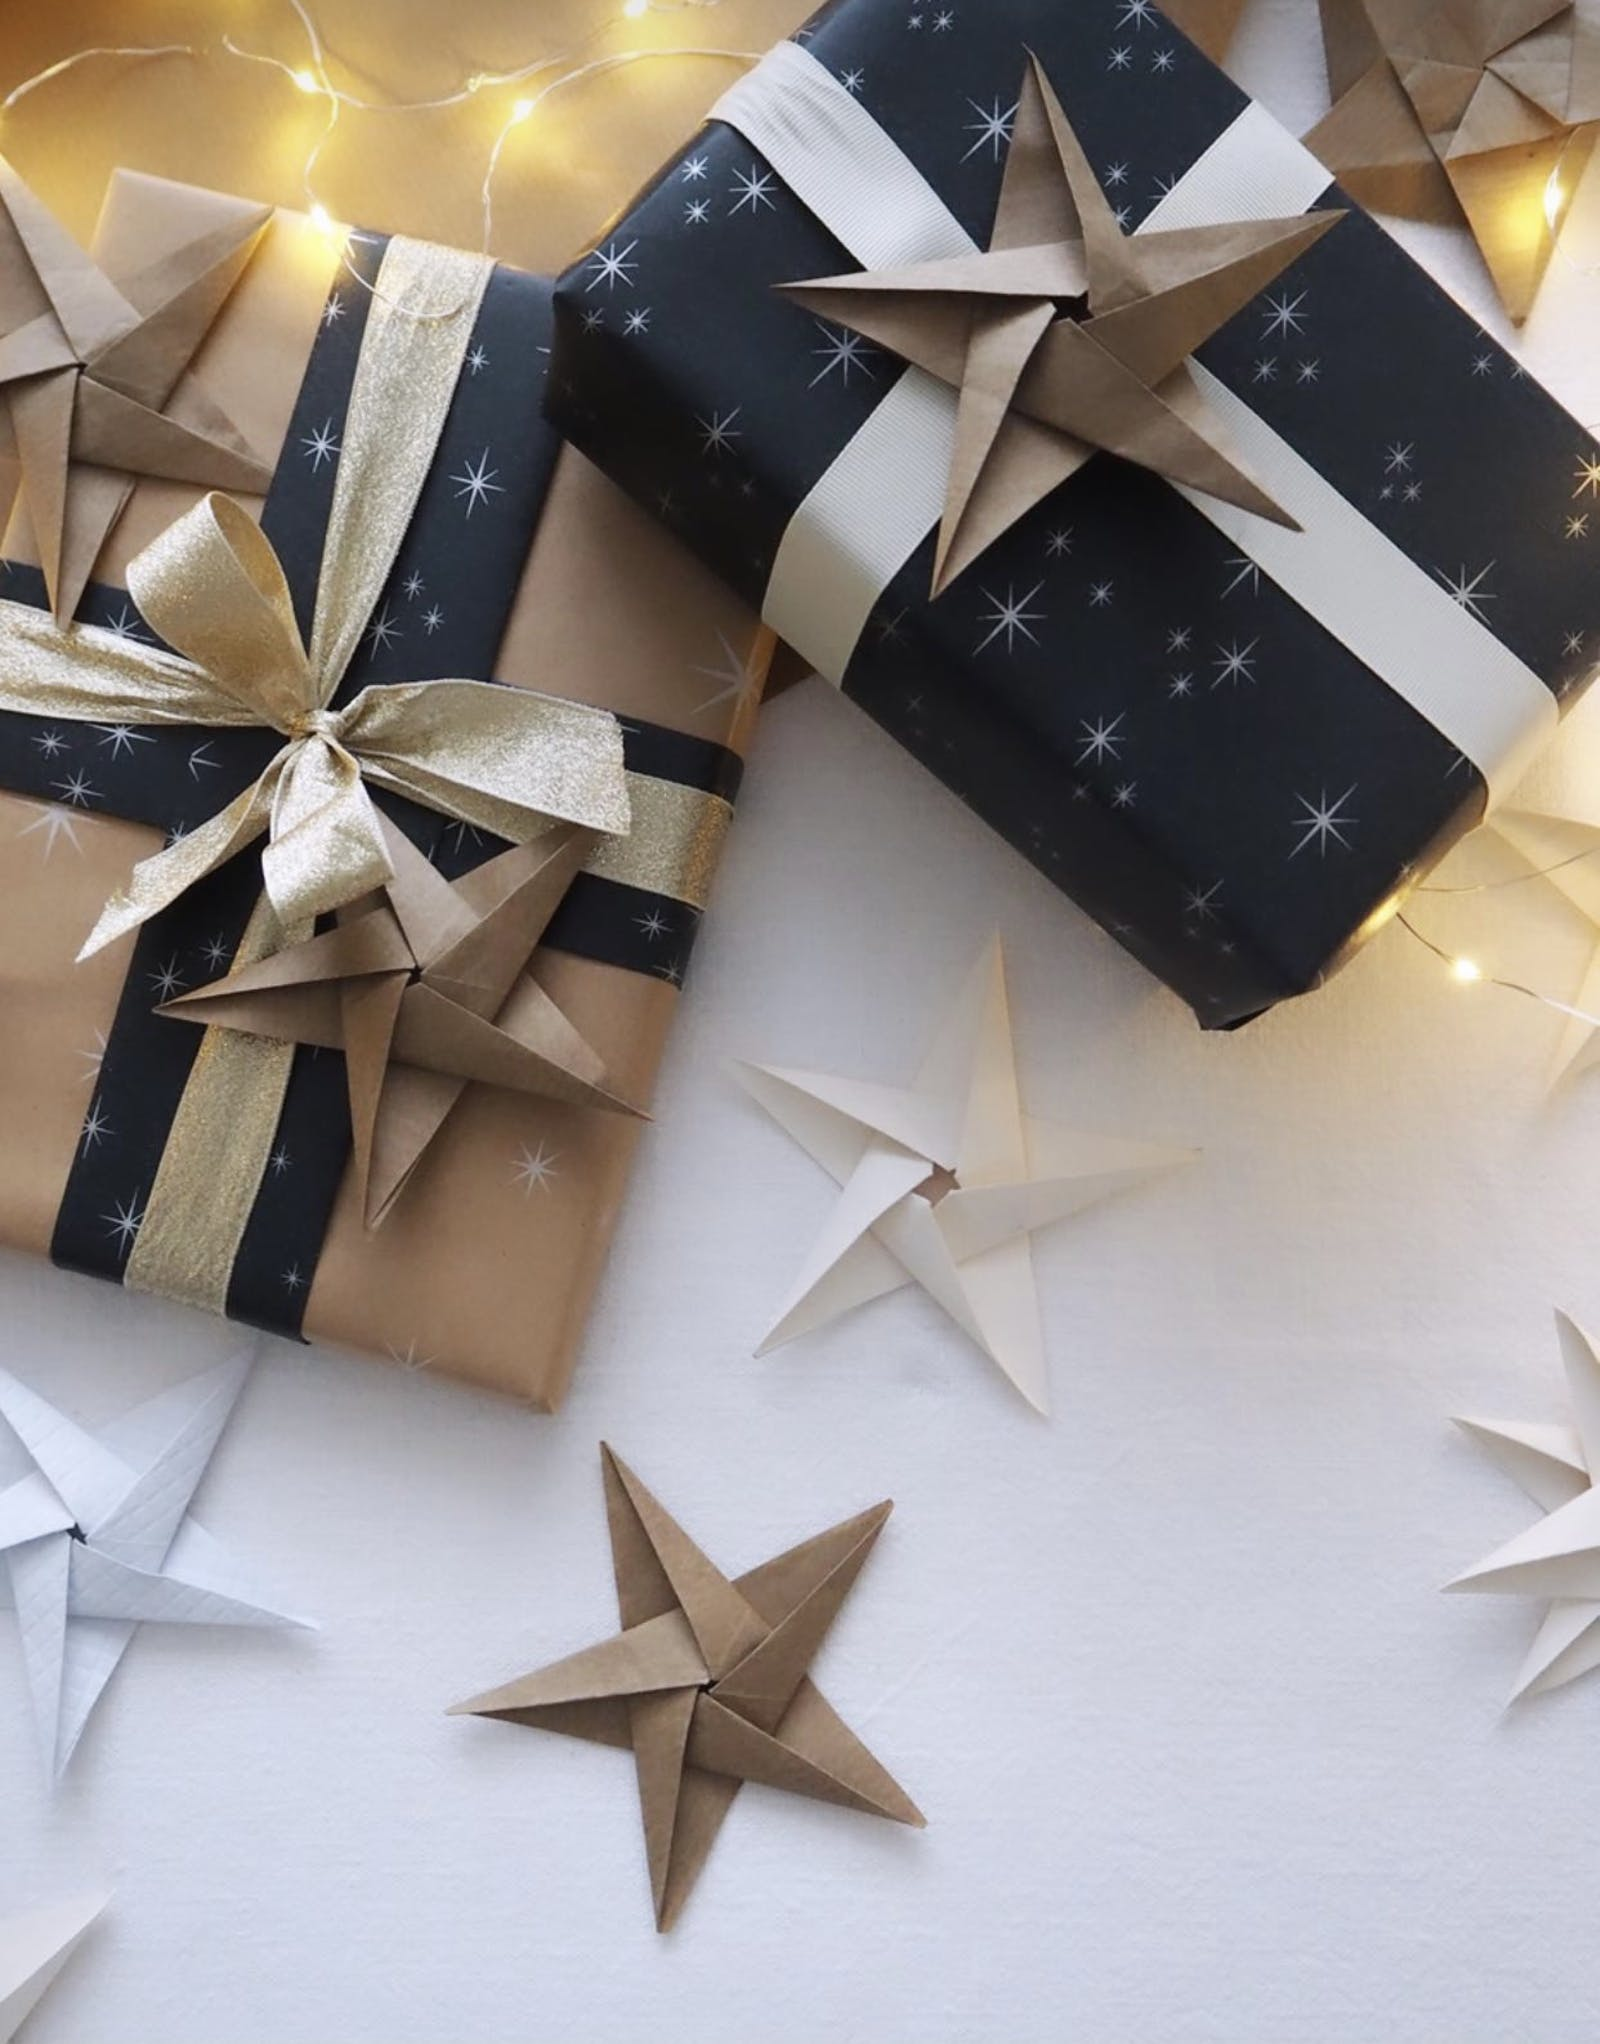 Star origami on gifts